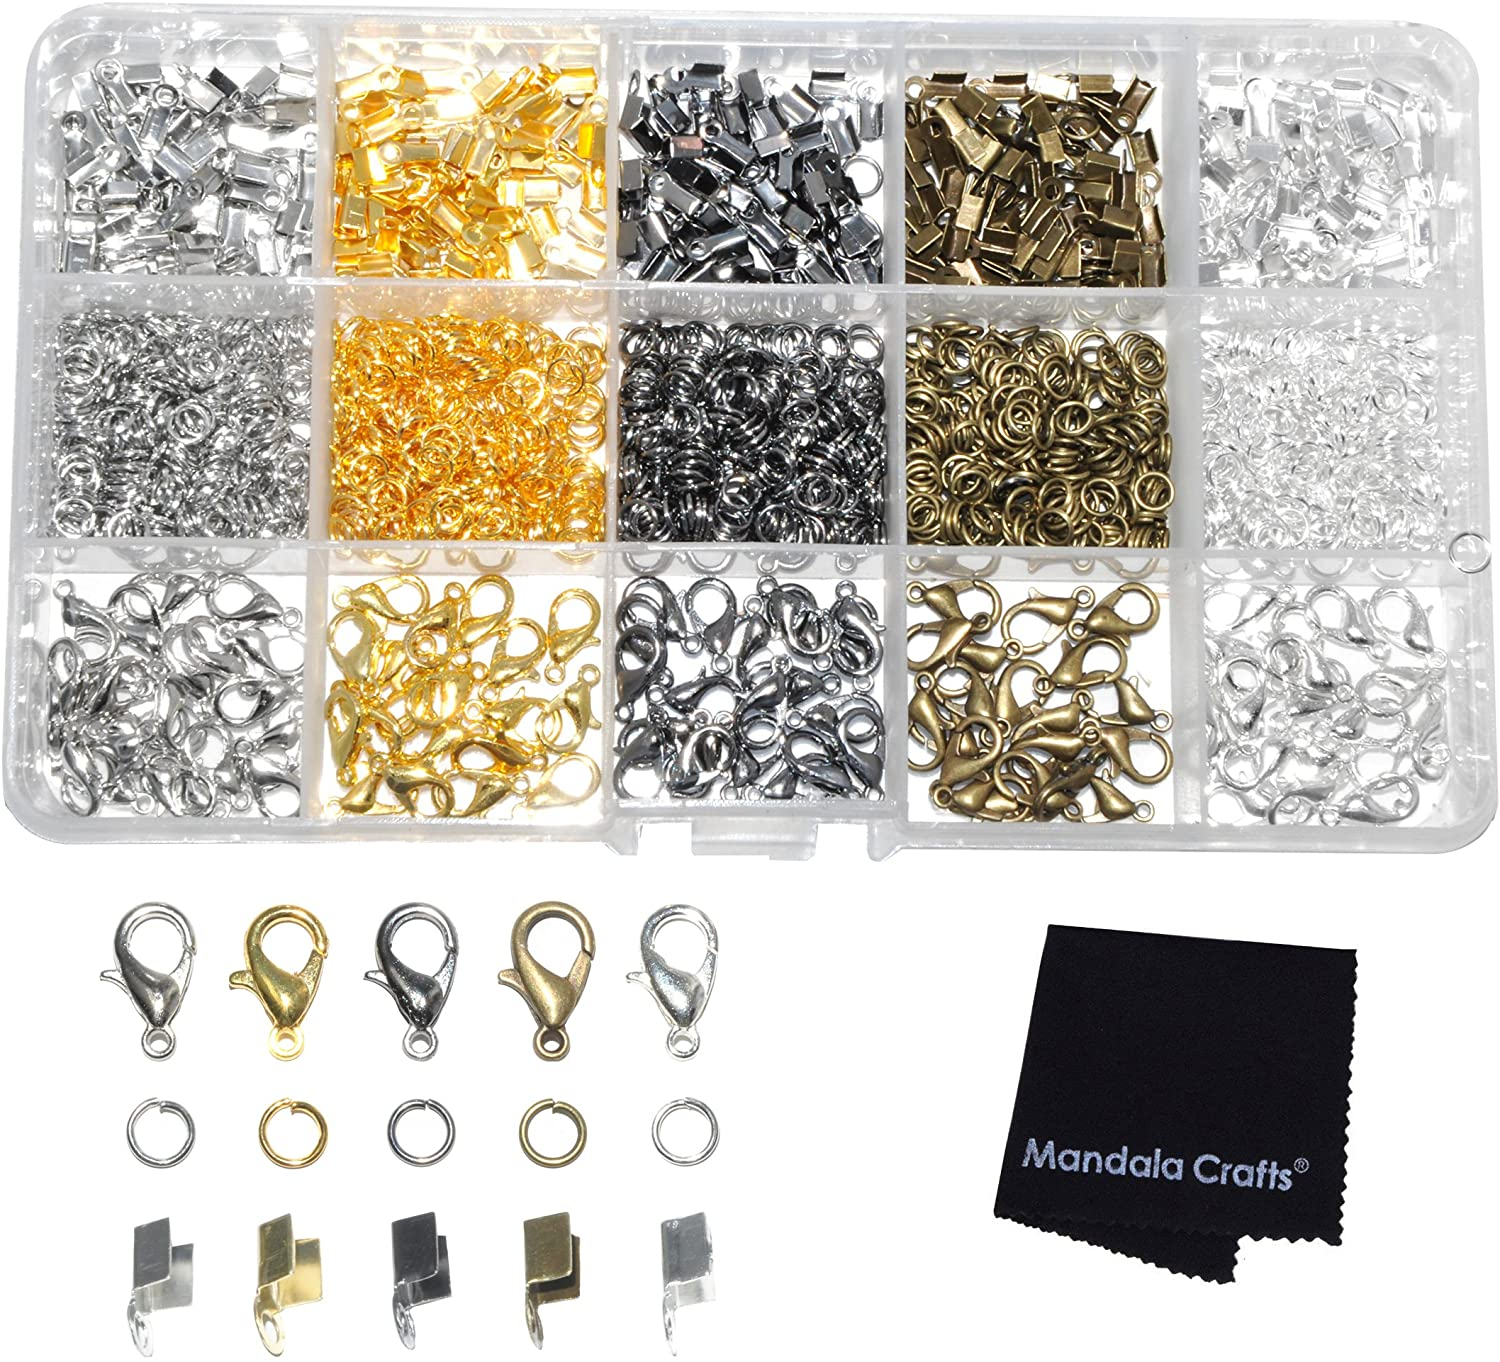 RIBBON CRIMPS FOR JEWELRY MAKING RIBBON CLAMPS FOLD OVER CORD ENDS JEWELRY FINDING KIT FOR BRACELETS BOOKMARKS 5 COLORS 3 X 6MM